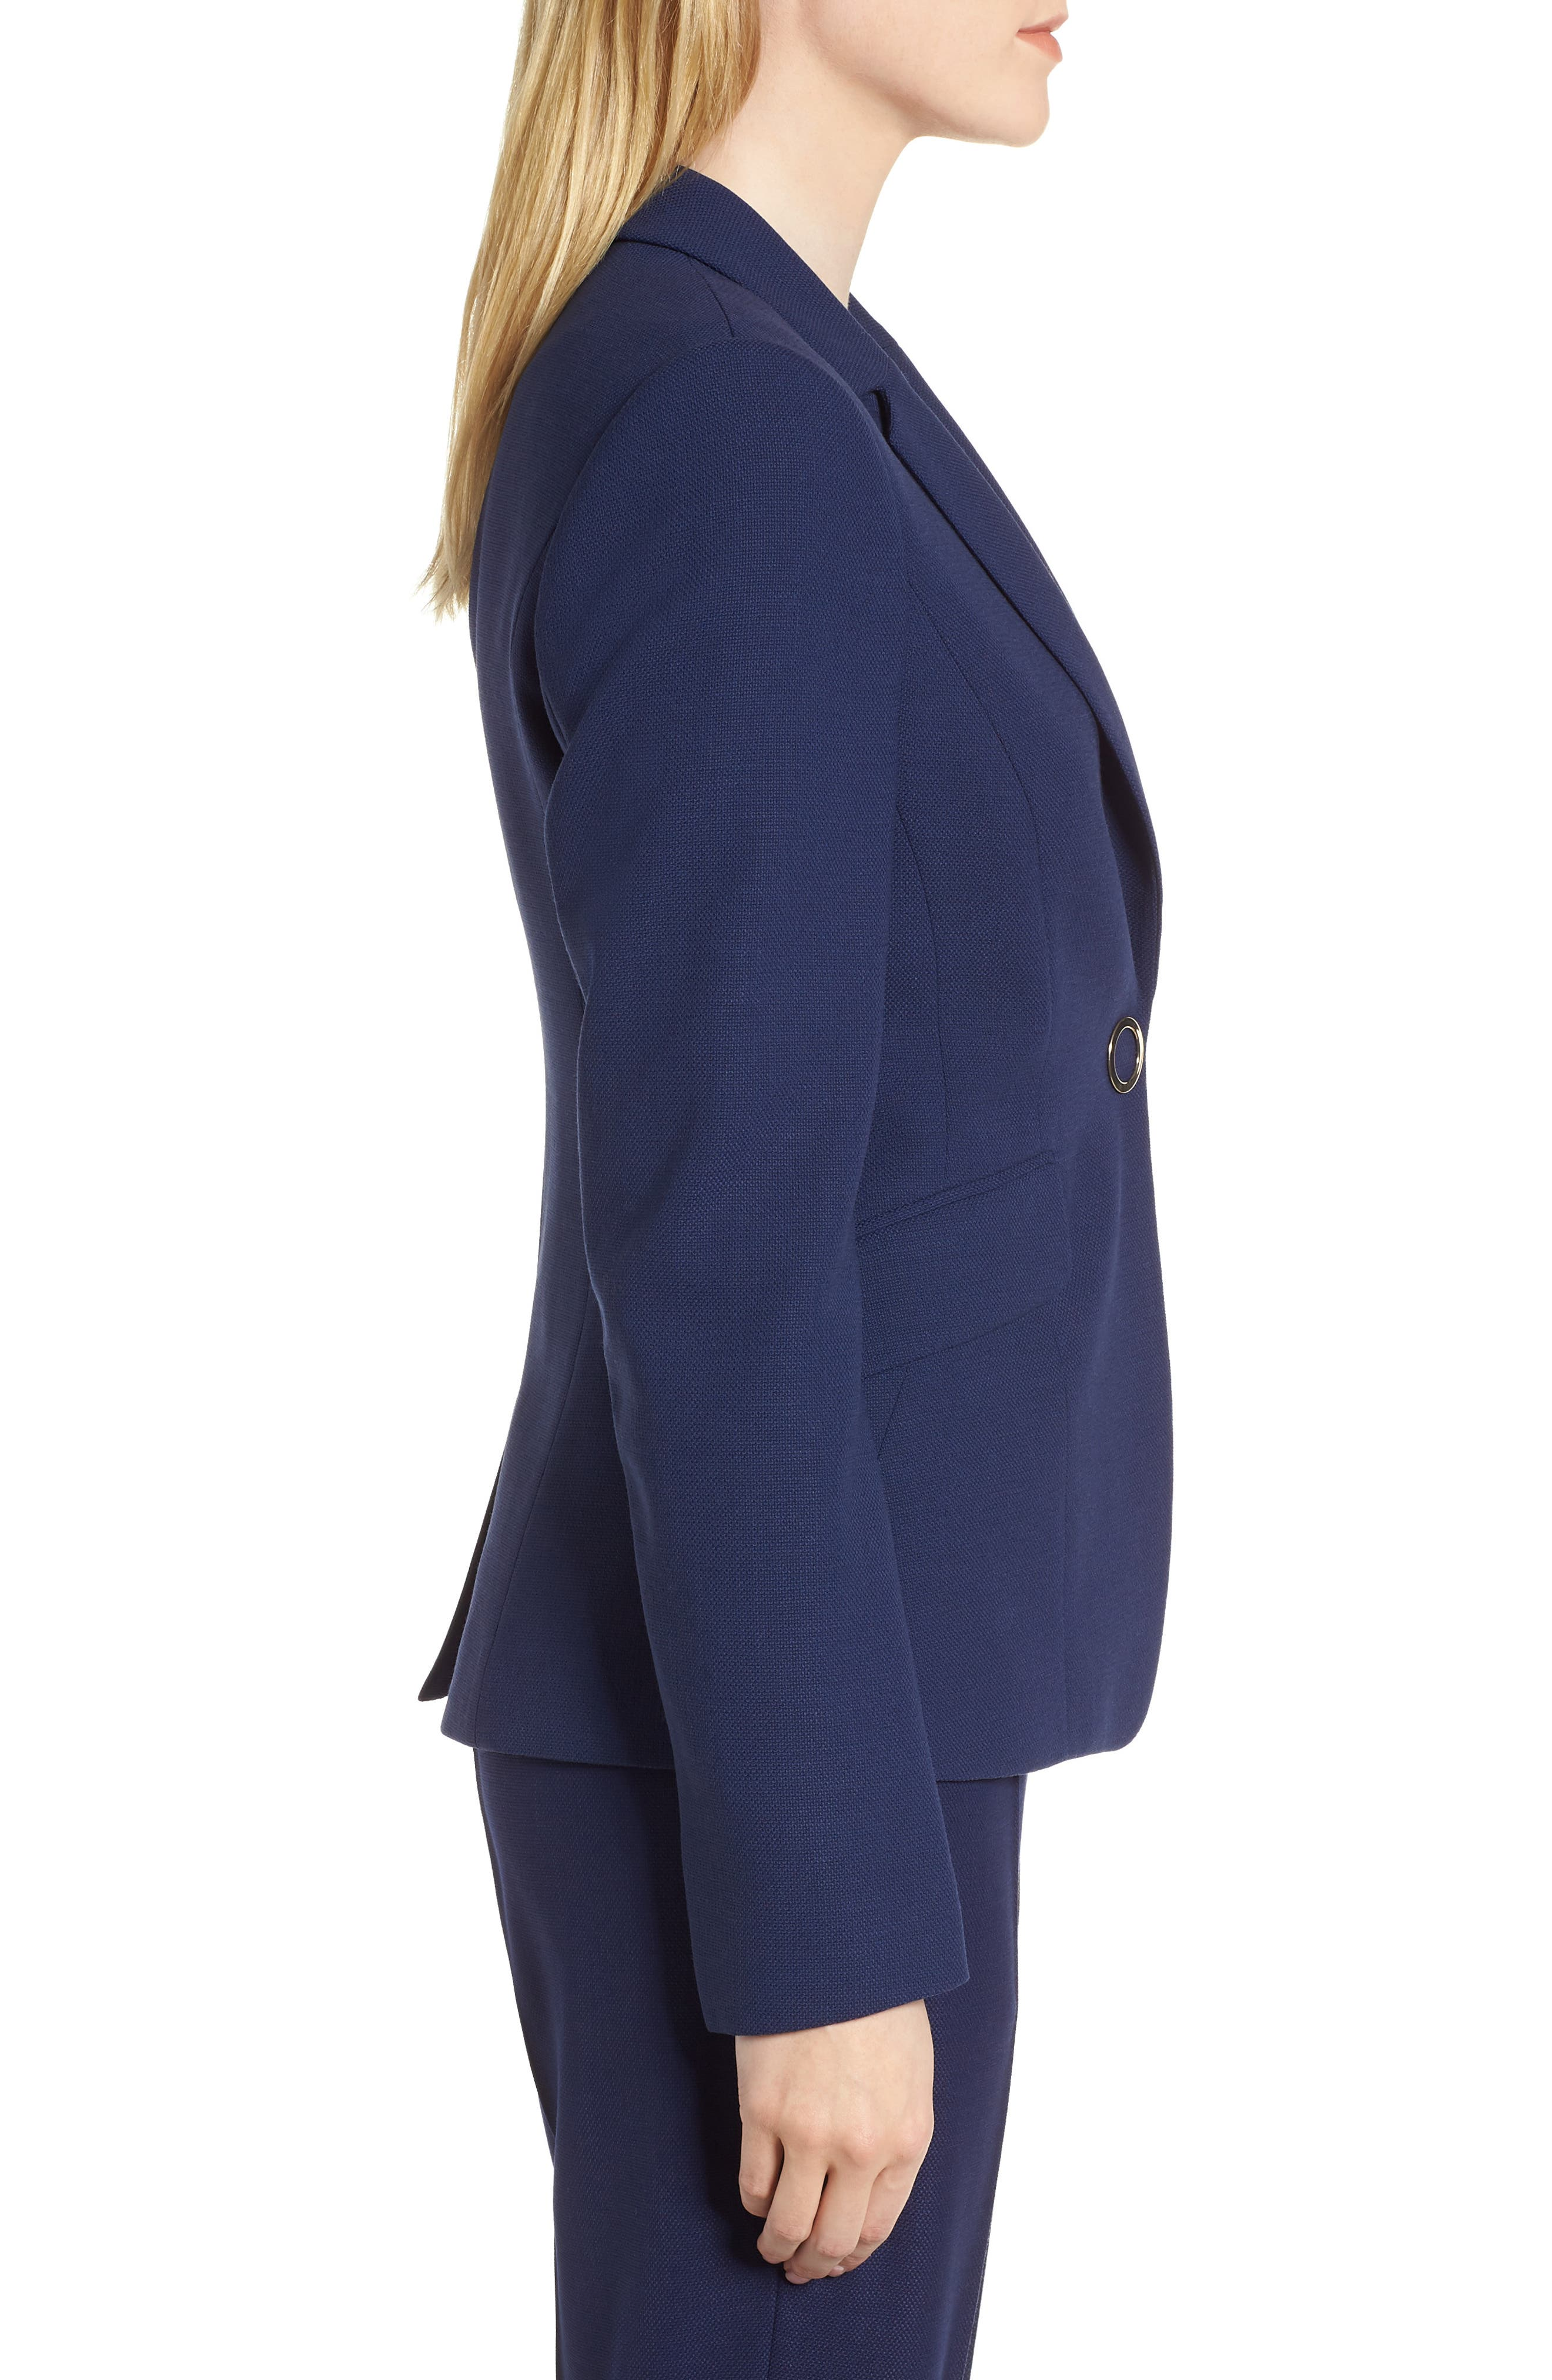 Jibalena Textured Stretch Wool Suit Jacket,                             Alternate thumbnail 3, color,                             Nautical